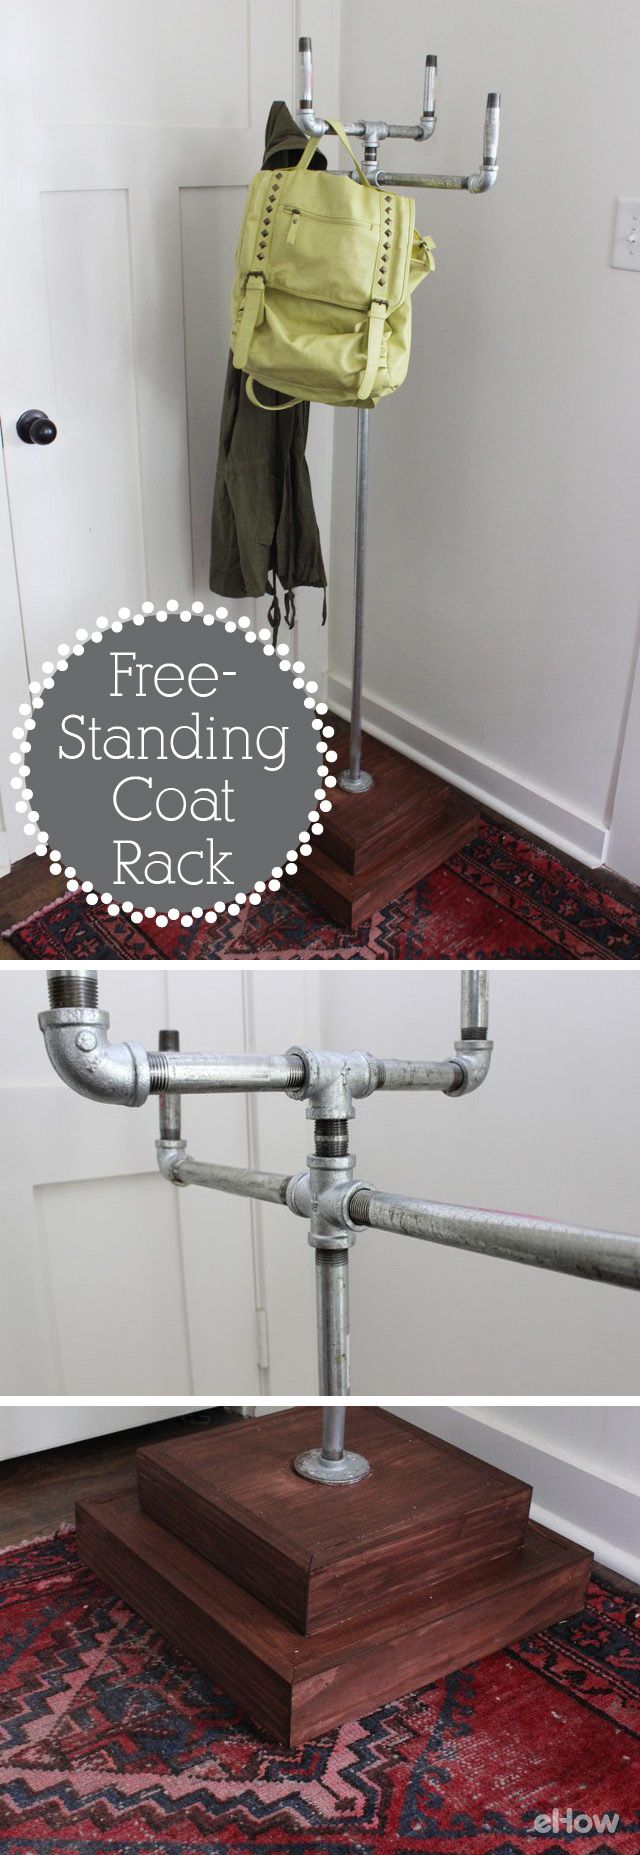 Industrial chic for the win! DIY your own free-standing coat rack in just a simple afternoon with this easy, step-by-step tutorial. The pipes just screw into each other. It's eye catching and perfect for your entry way!  http://www.ehow.com/how_6515871_build-standing-coat-rack.html?utm_source=pinterest.com&utm_medium=referral&utm_content=freestyle&utm_campaign=fanpage